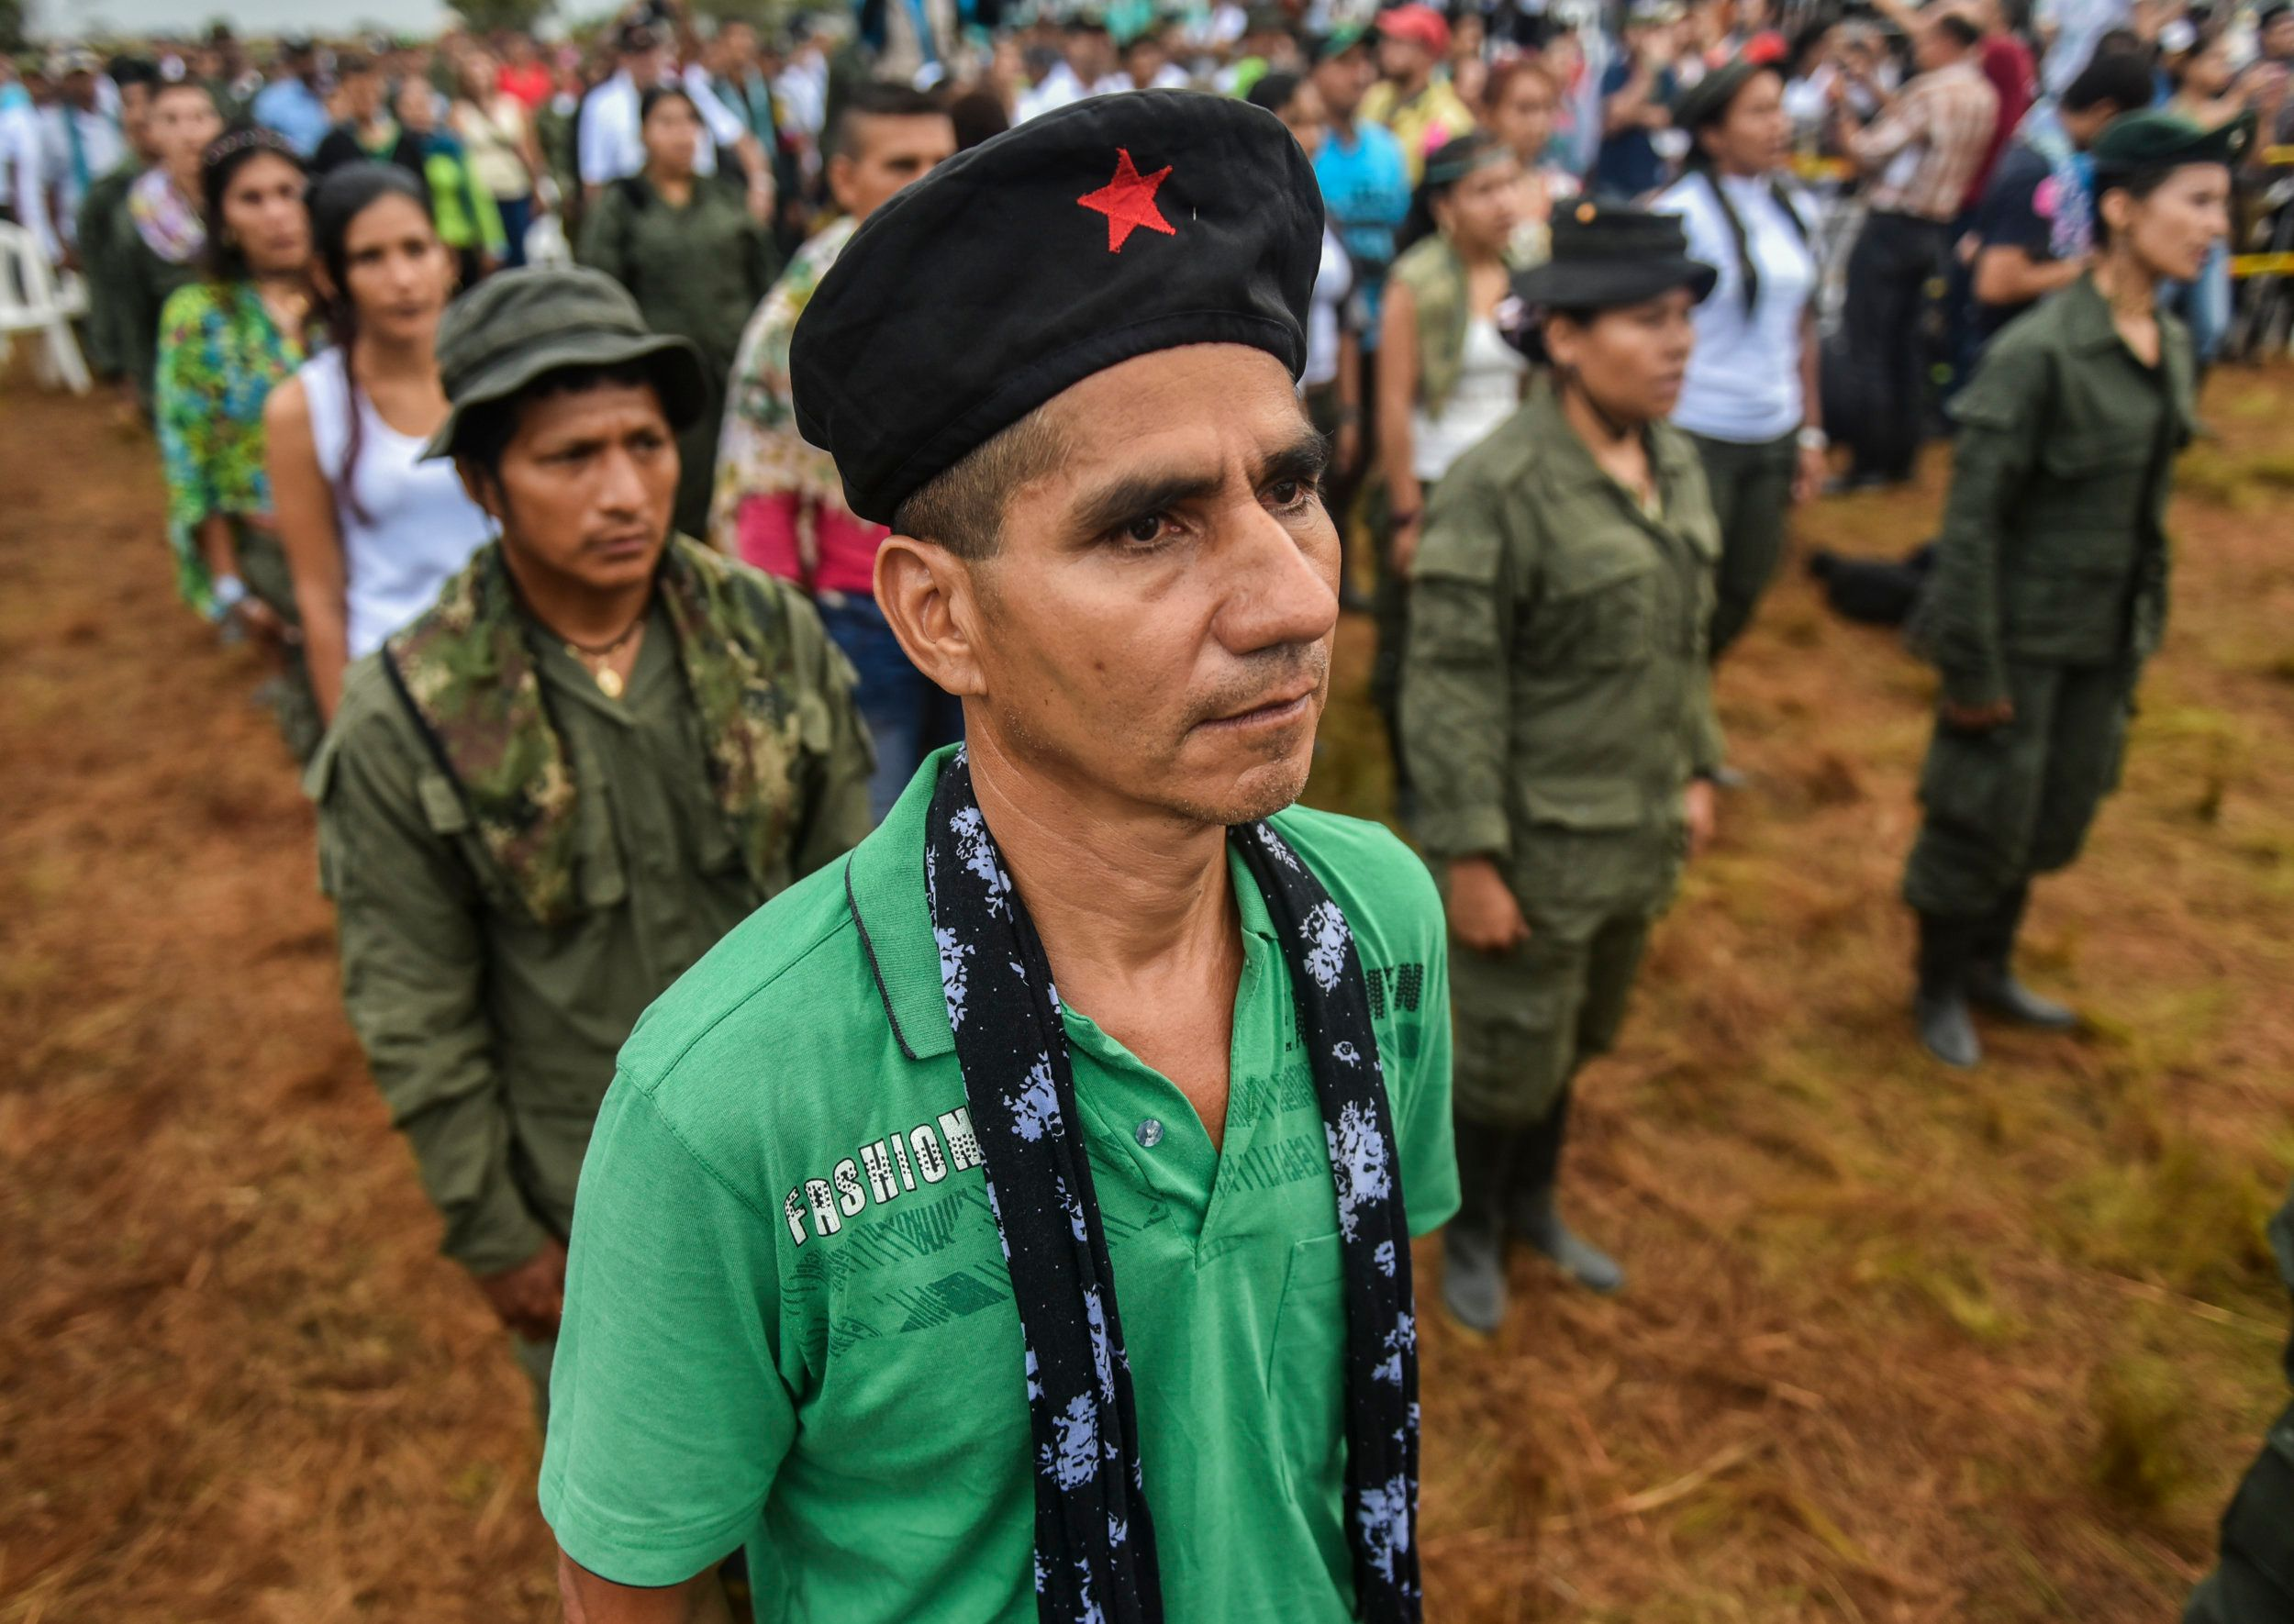 Members of the Revolutionary Armed Forces of Colombia (FARC) attend the opening ceremony of the September 17-23 10th National Guerrilla Conference at the camp in Llanos del Yari, Caqueta department, Colombia, on September 17, 2016. After 52 years of armed conflict, FARC rebels open what leaders hope will be their last conference as a guerrilla army, where they are due to vote on a historic peace deal with the Colombian government. / AFP / LUIS ACOSTA        (Photo credit should read LUIS ACOSTA/AFP/Getty Images)